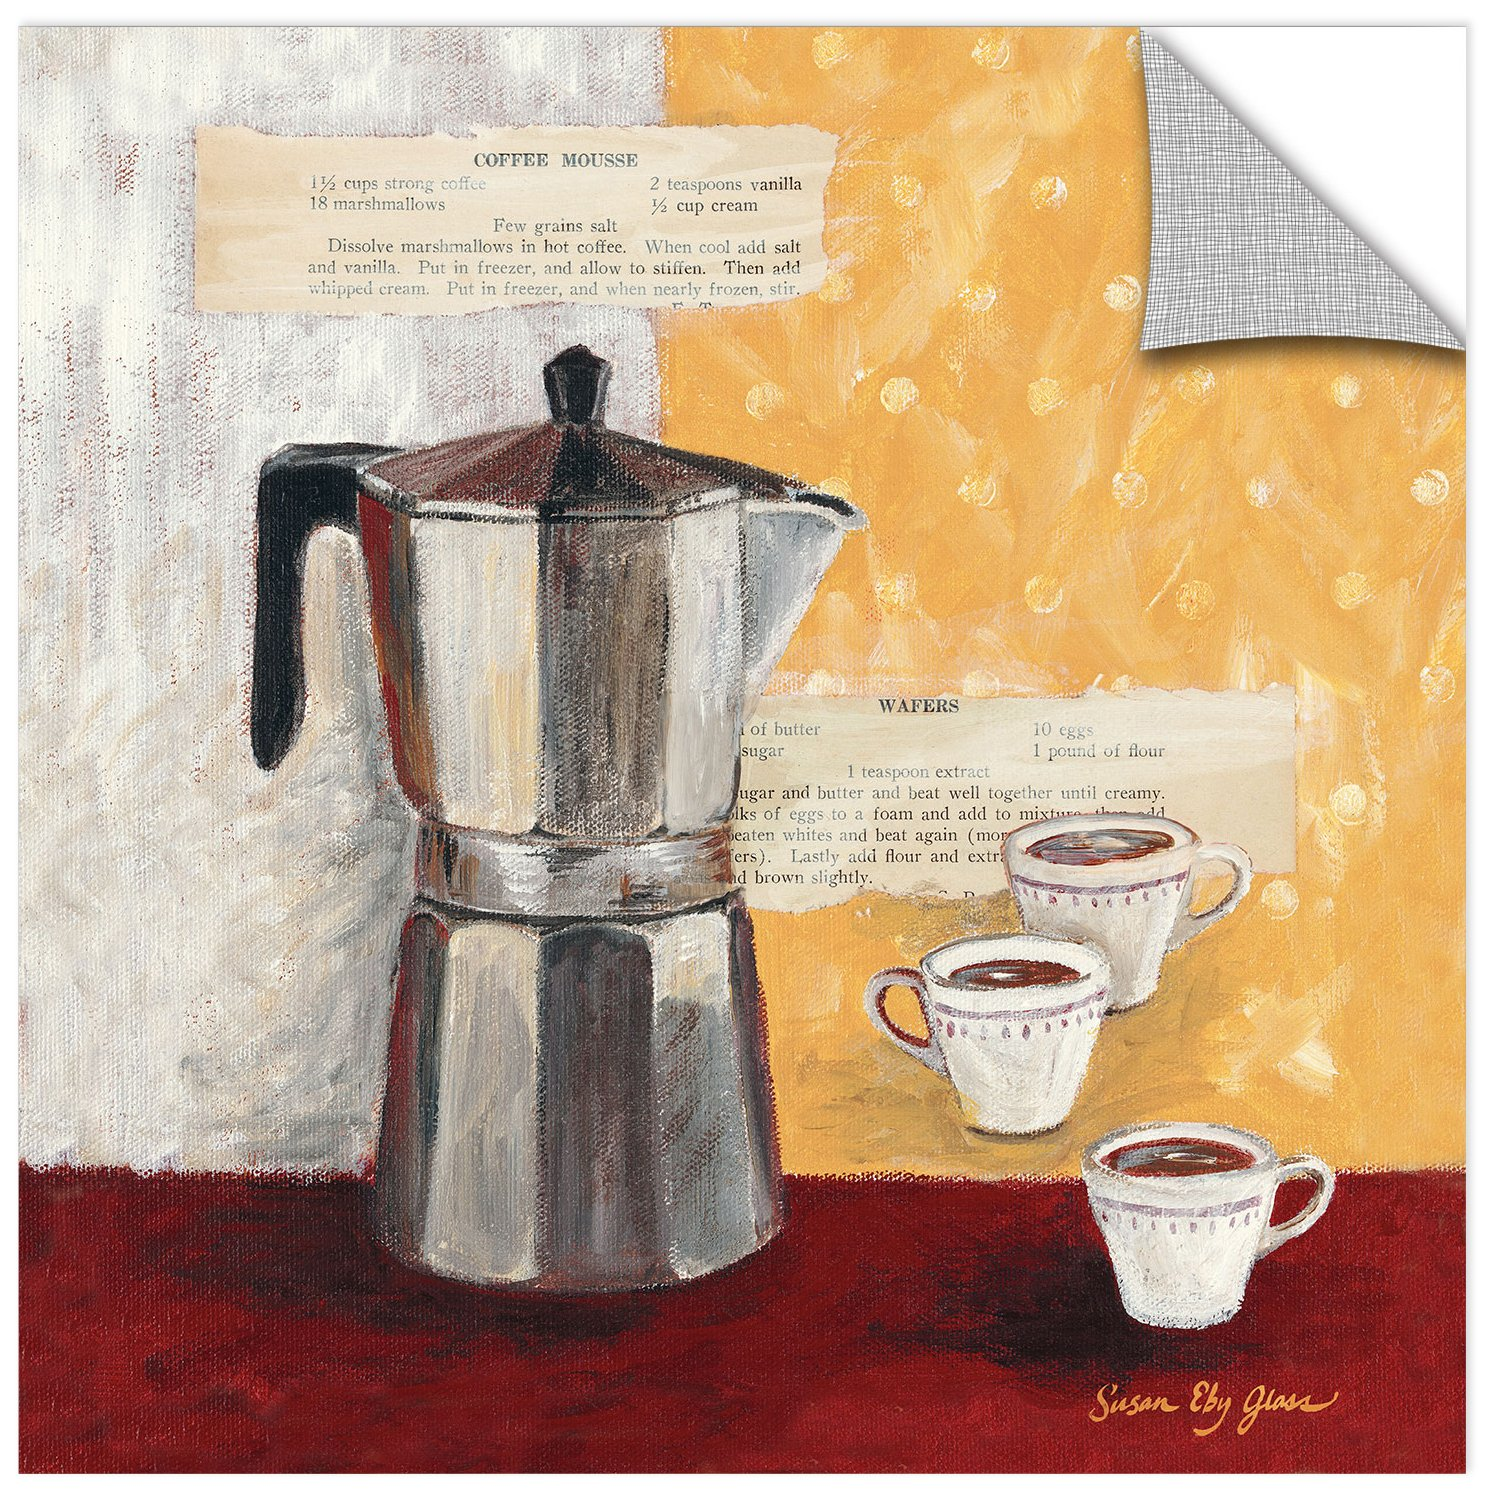 Susan Eby Glass Brew It Up Removable Wall Art Mural 18X18